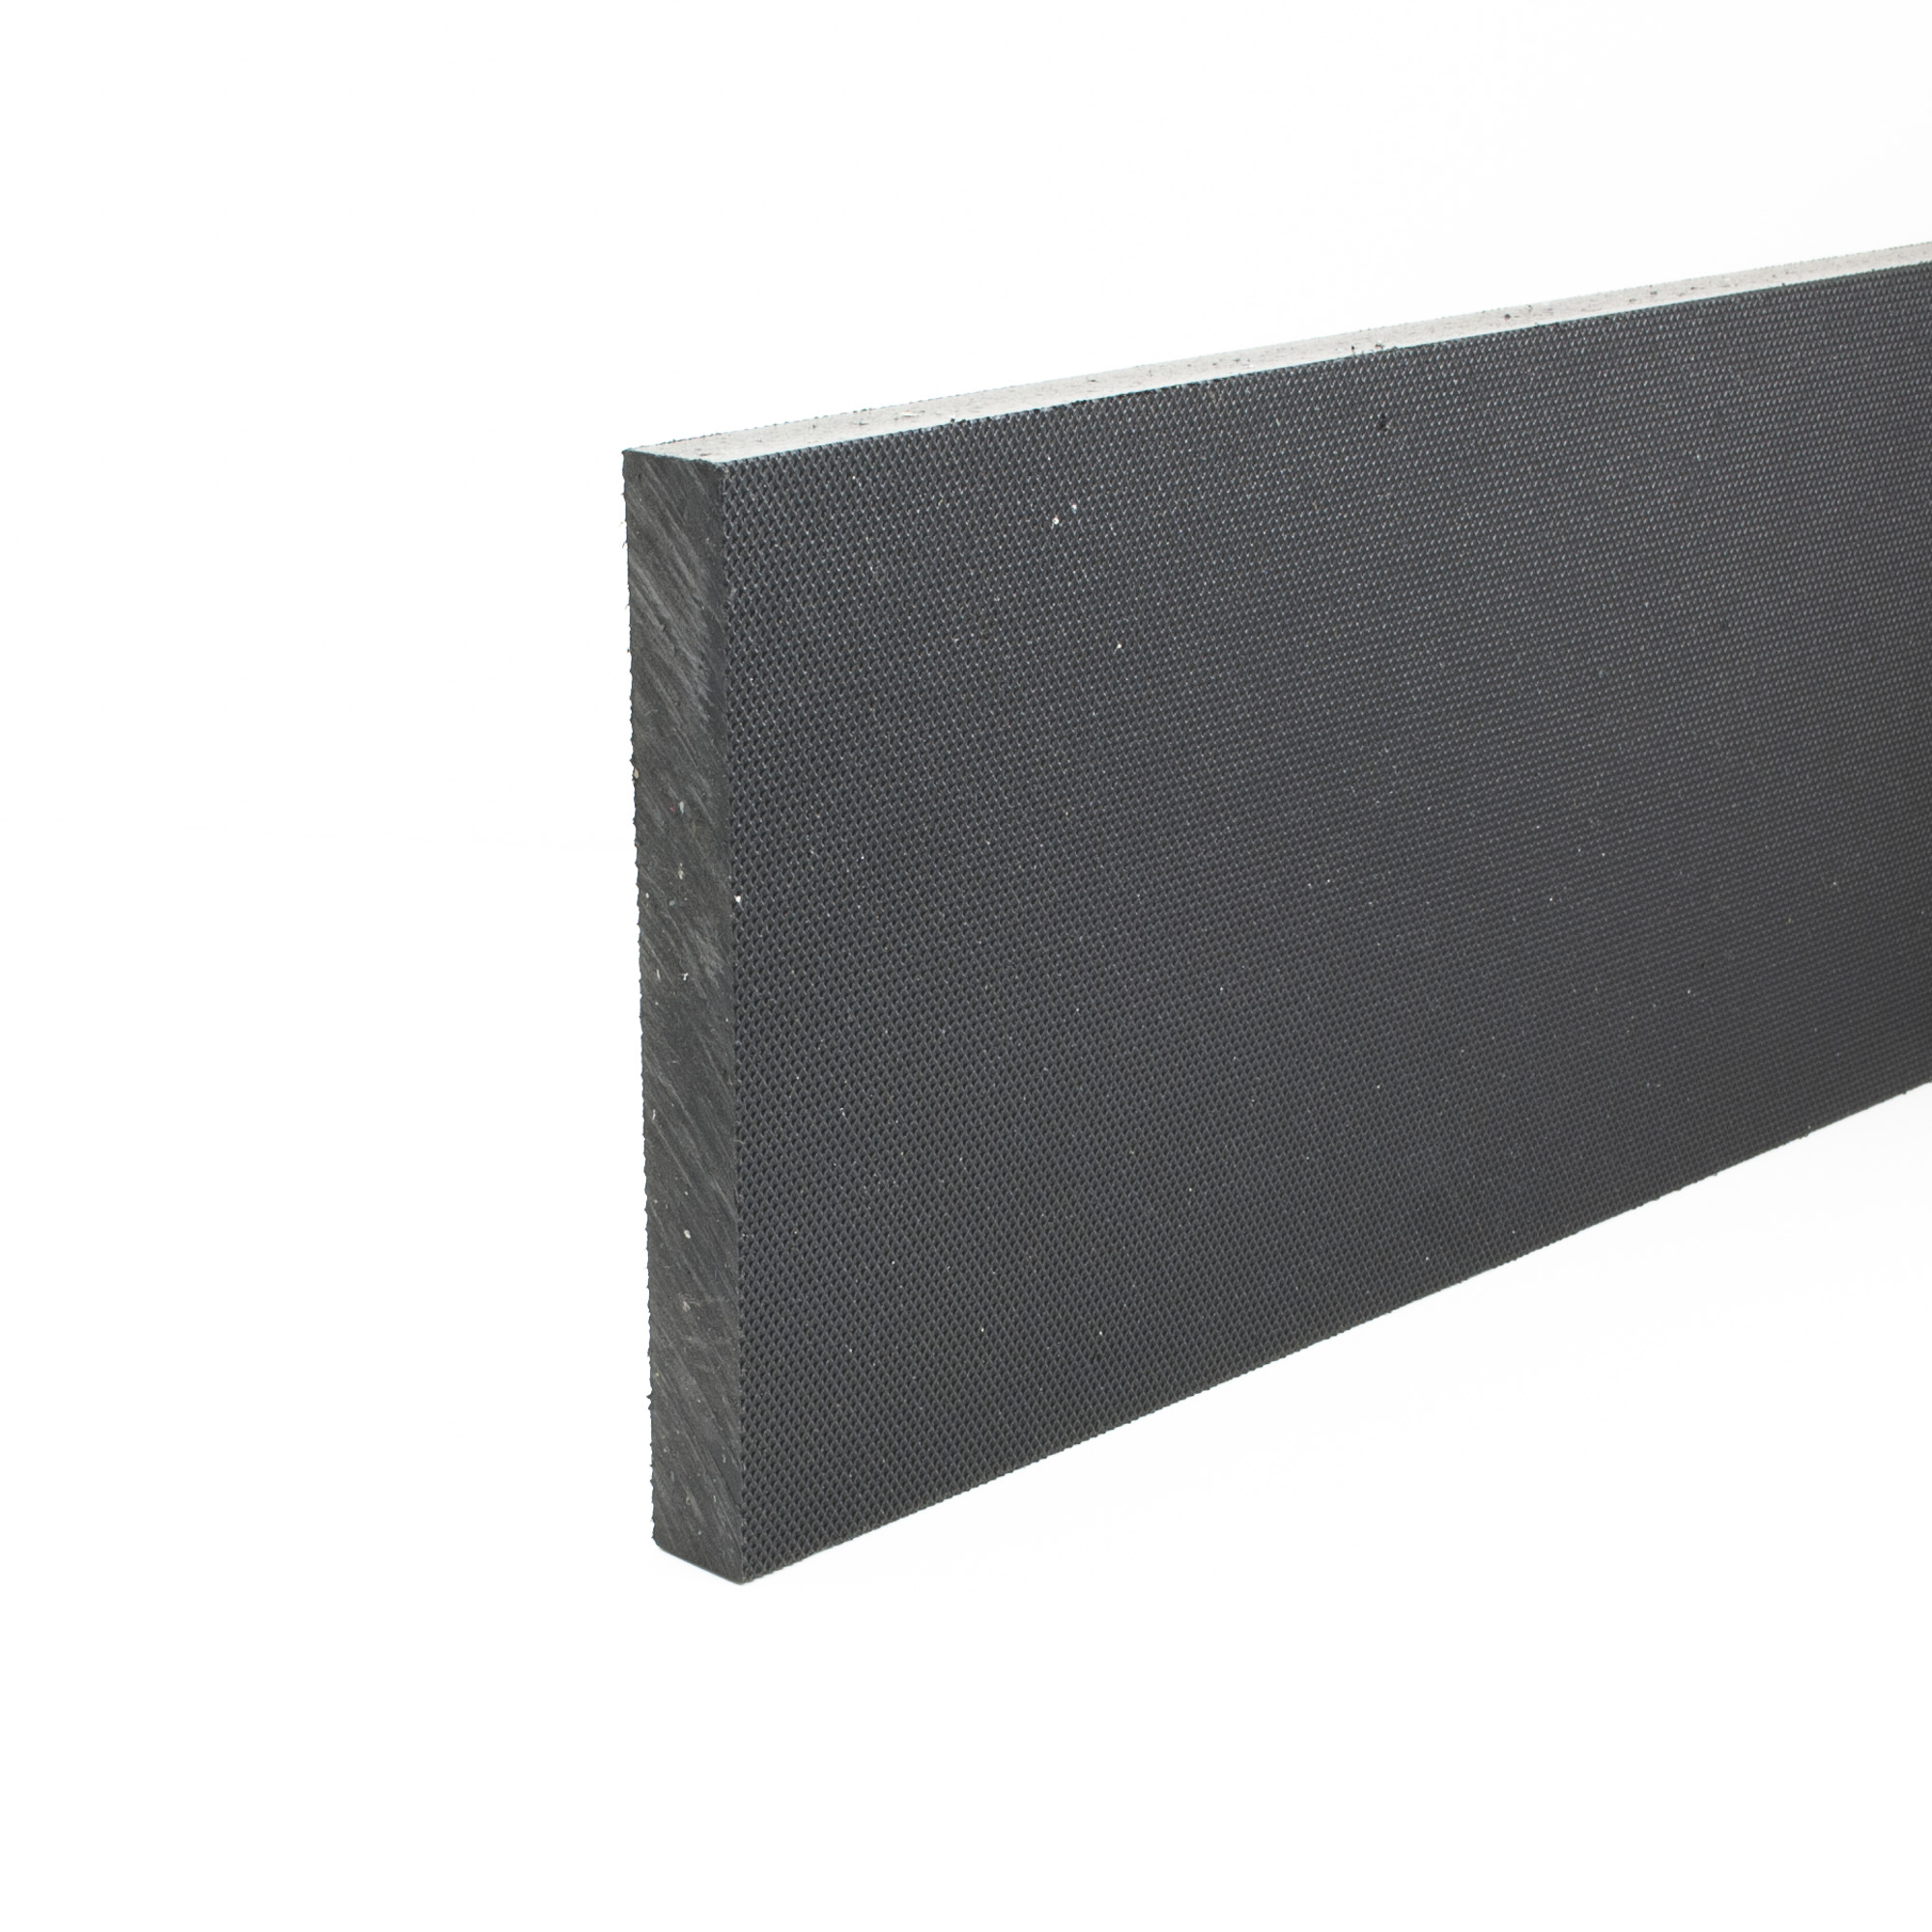 Stokbord Embossed LDPE Black 18mm x 1.22m x 1.22m sheet